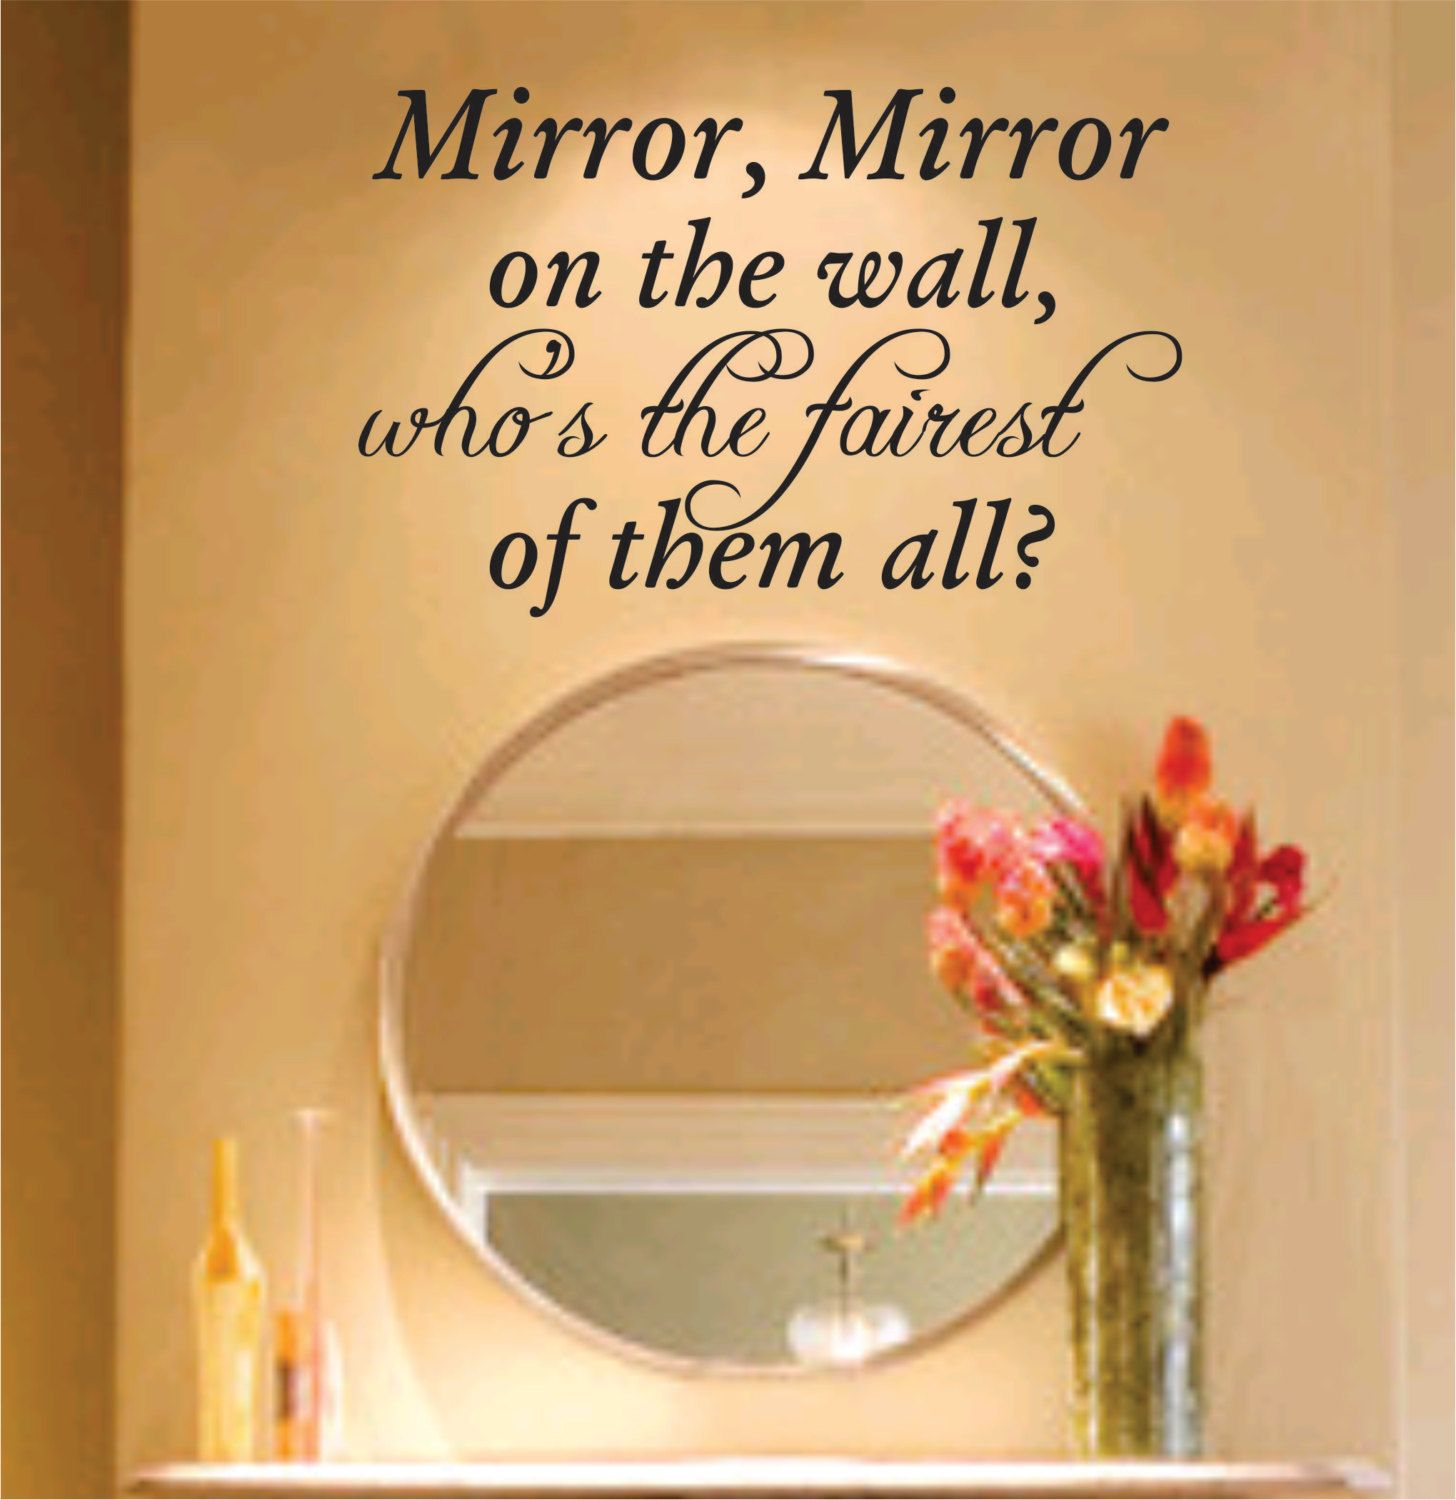 Mirror mirror on the wall decal sticker family art graphic home mirror mirror on the wall decal sticker family art graphic home decor mural 2400 amipublicfo Choice Image